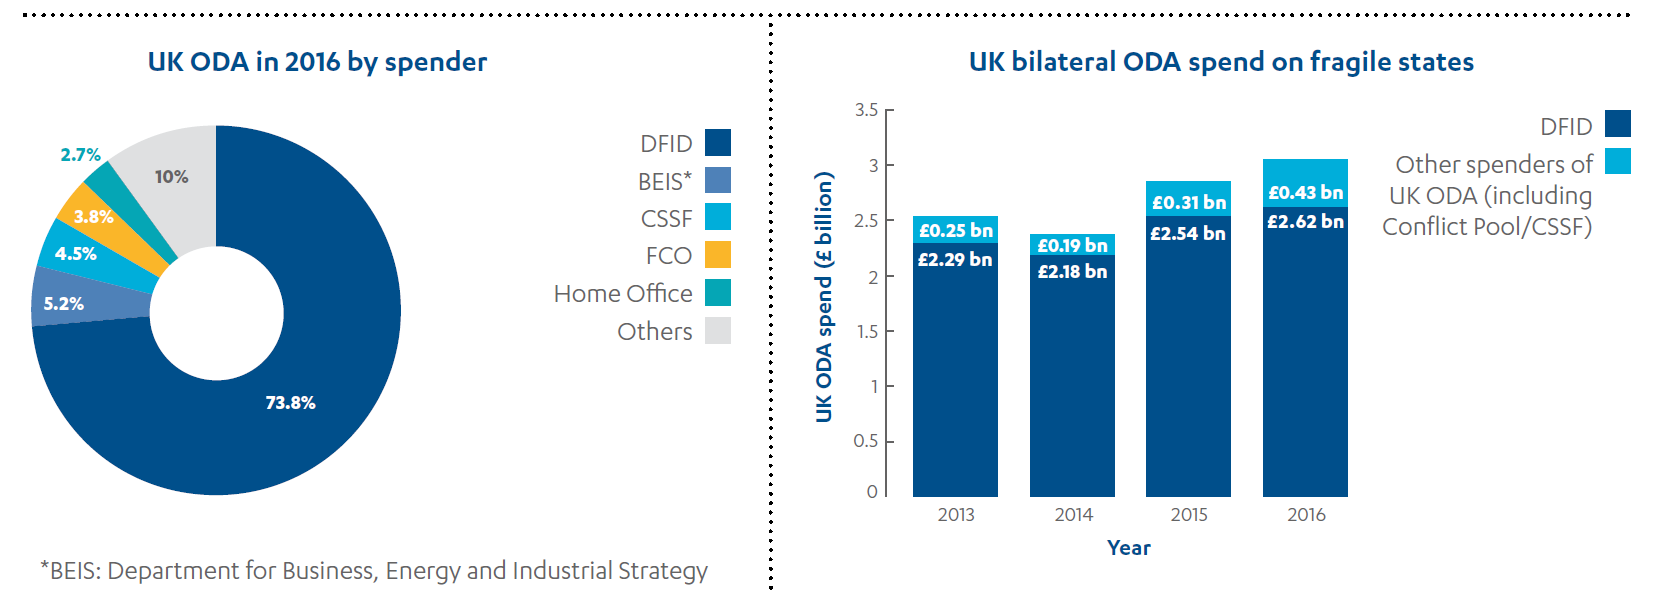 Pie and bar cahrt showing the UK's ODA spend in 2016 by department and Fund, and a bar chart showing bilateral spend to fragile states.